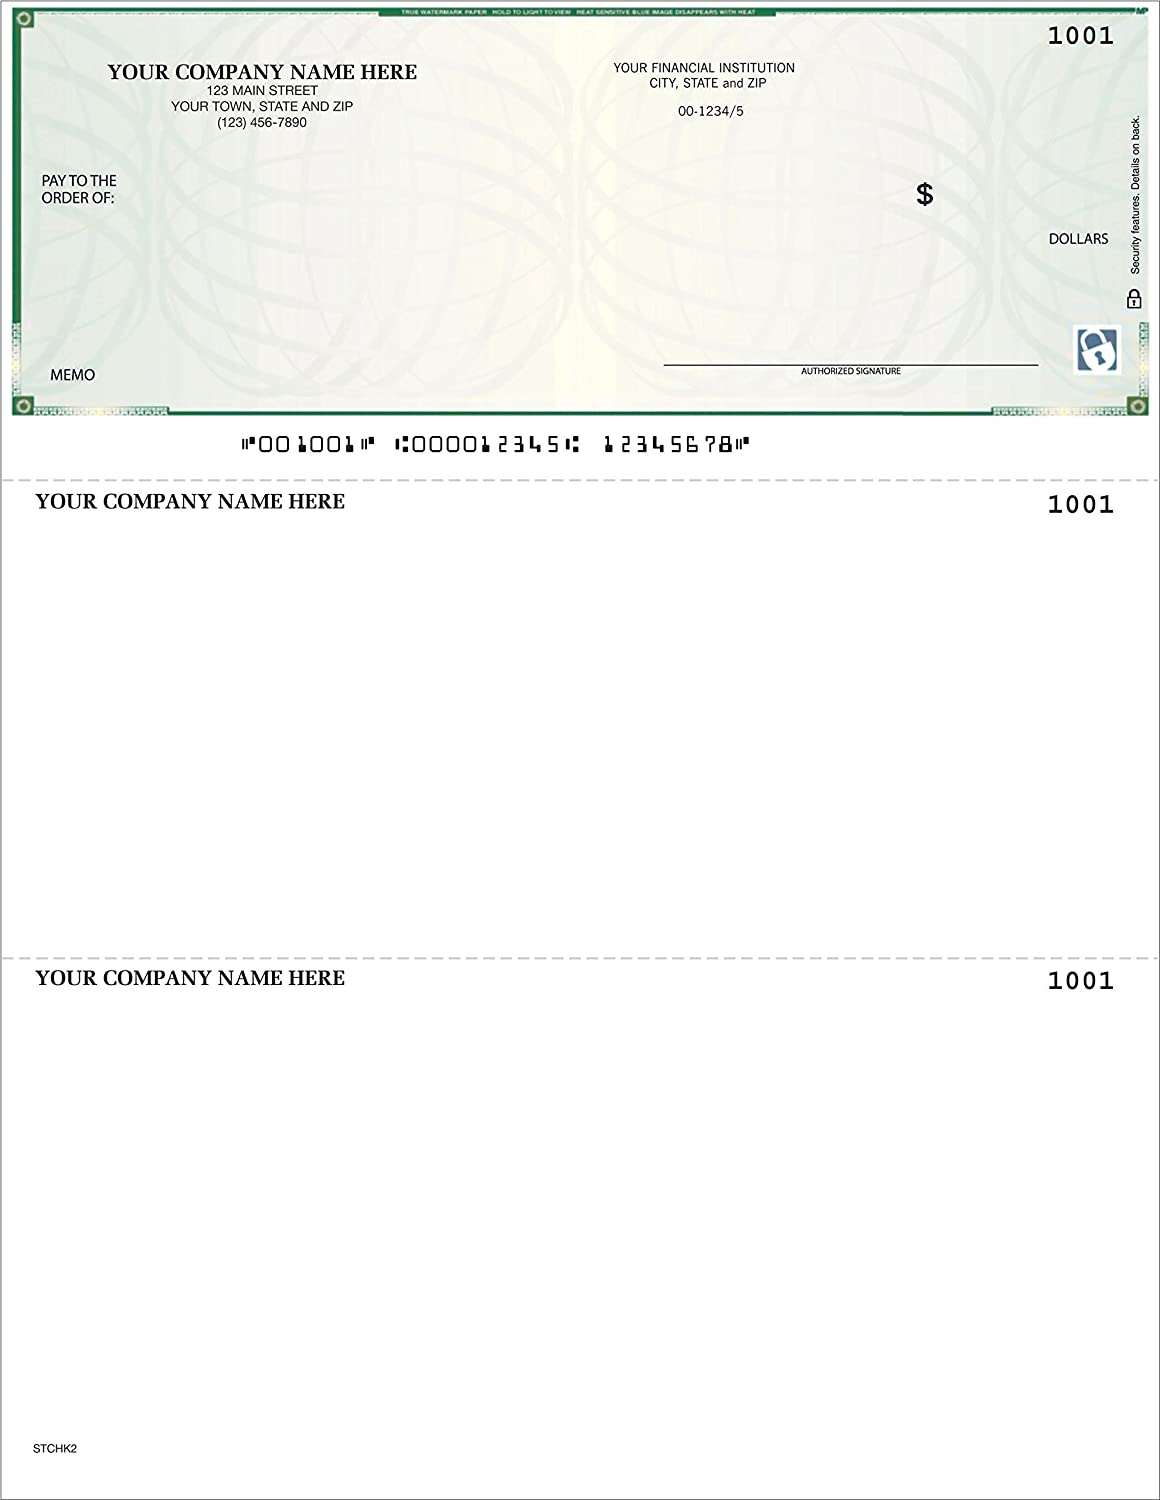 Compatible with QuickBooks 5000 Qty High Security CheckSimple Laser Business Checks - Custom 3//Page Quicken